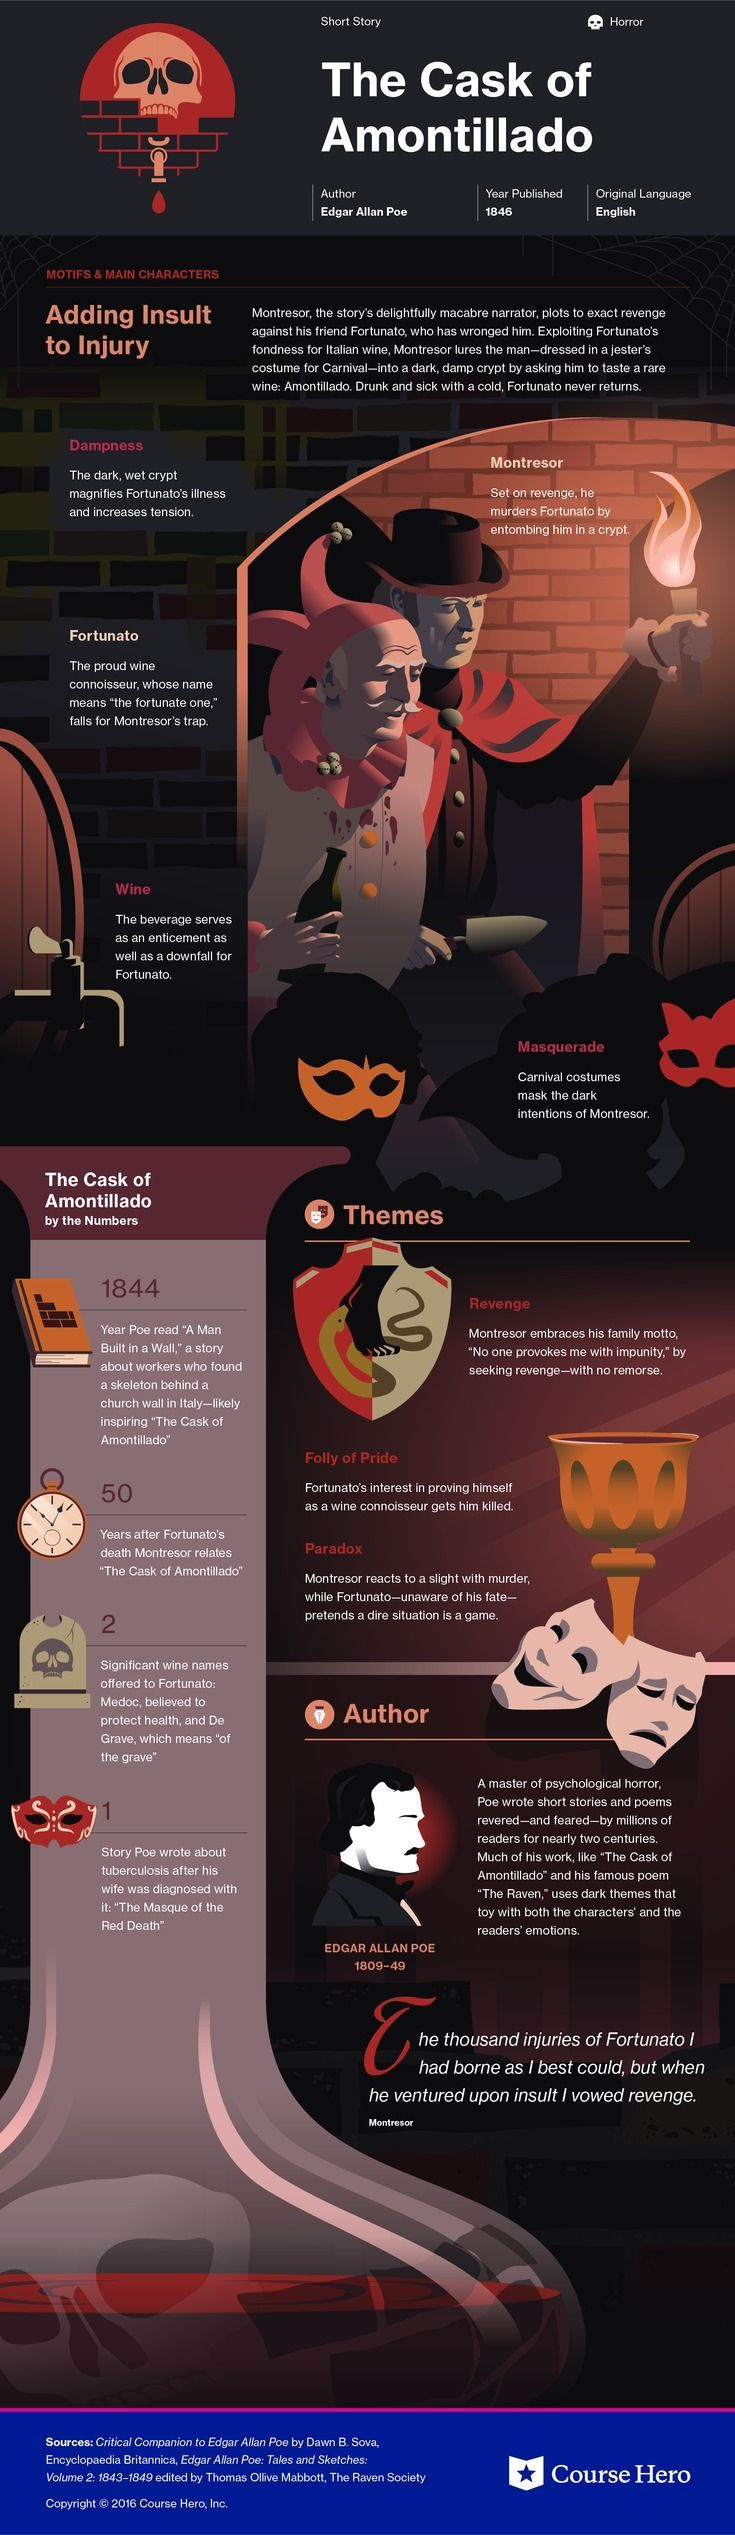 The Cask of Amontillado Infographic | Course Hero